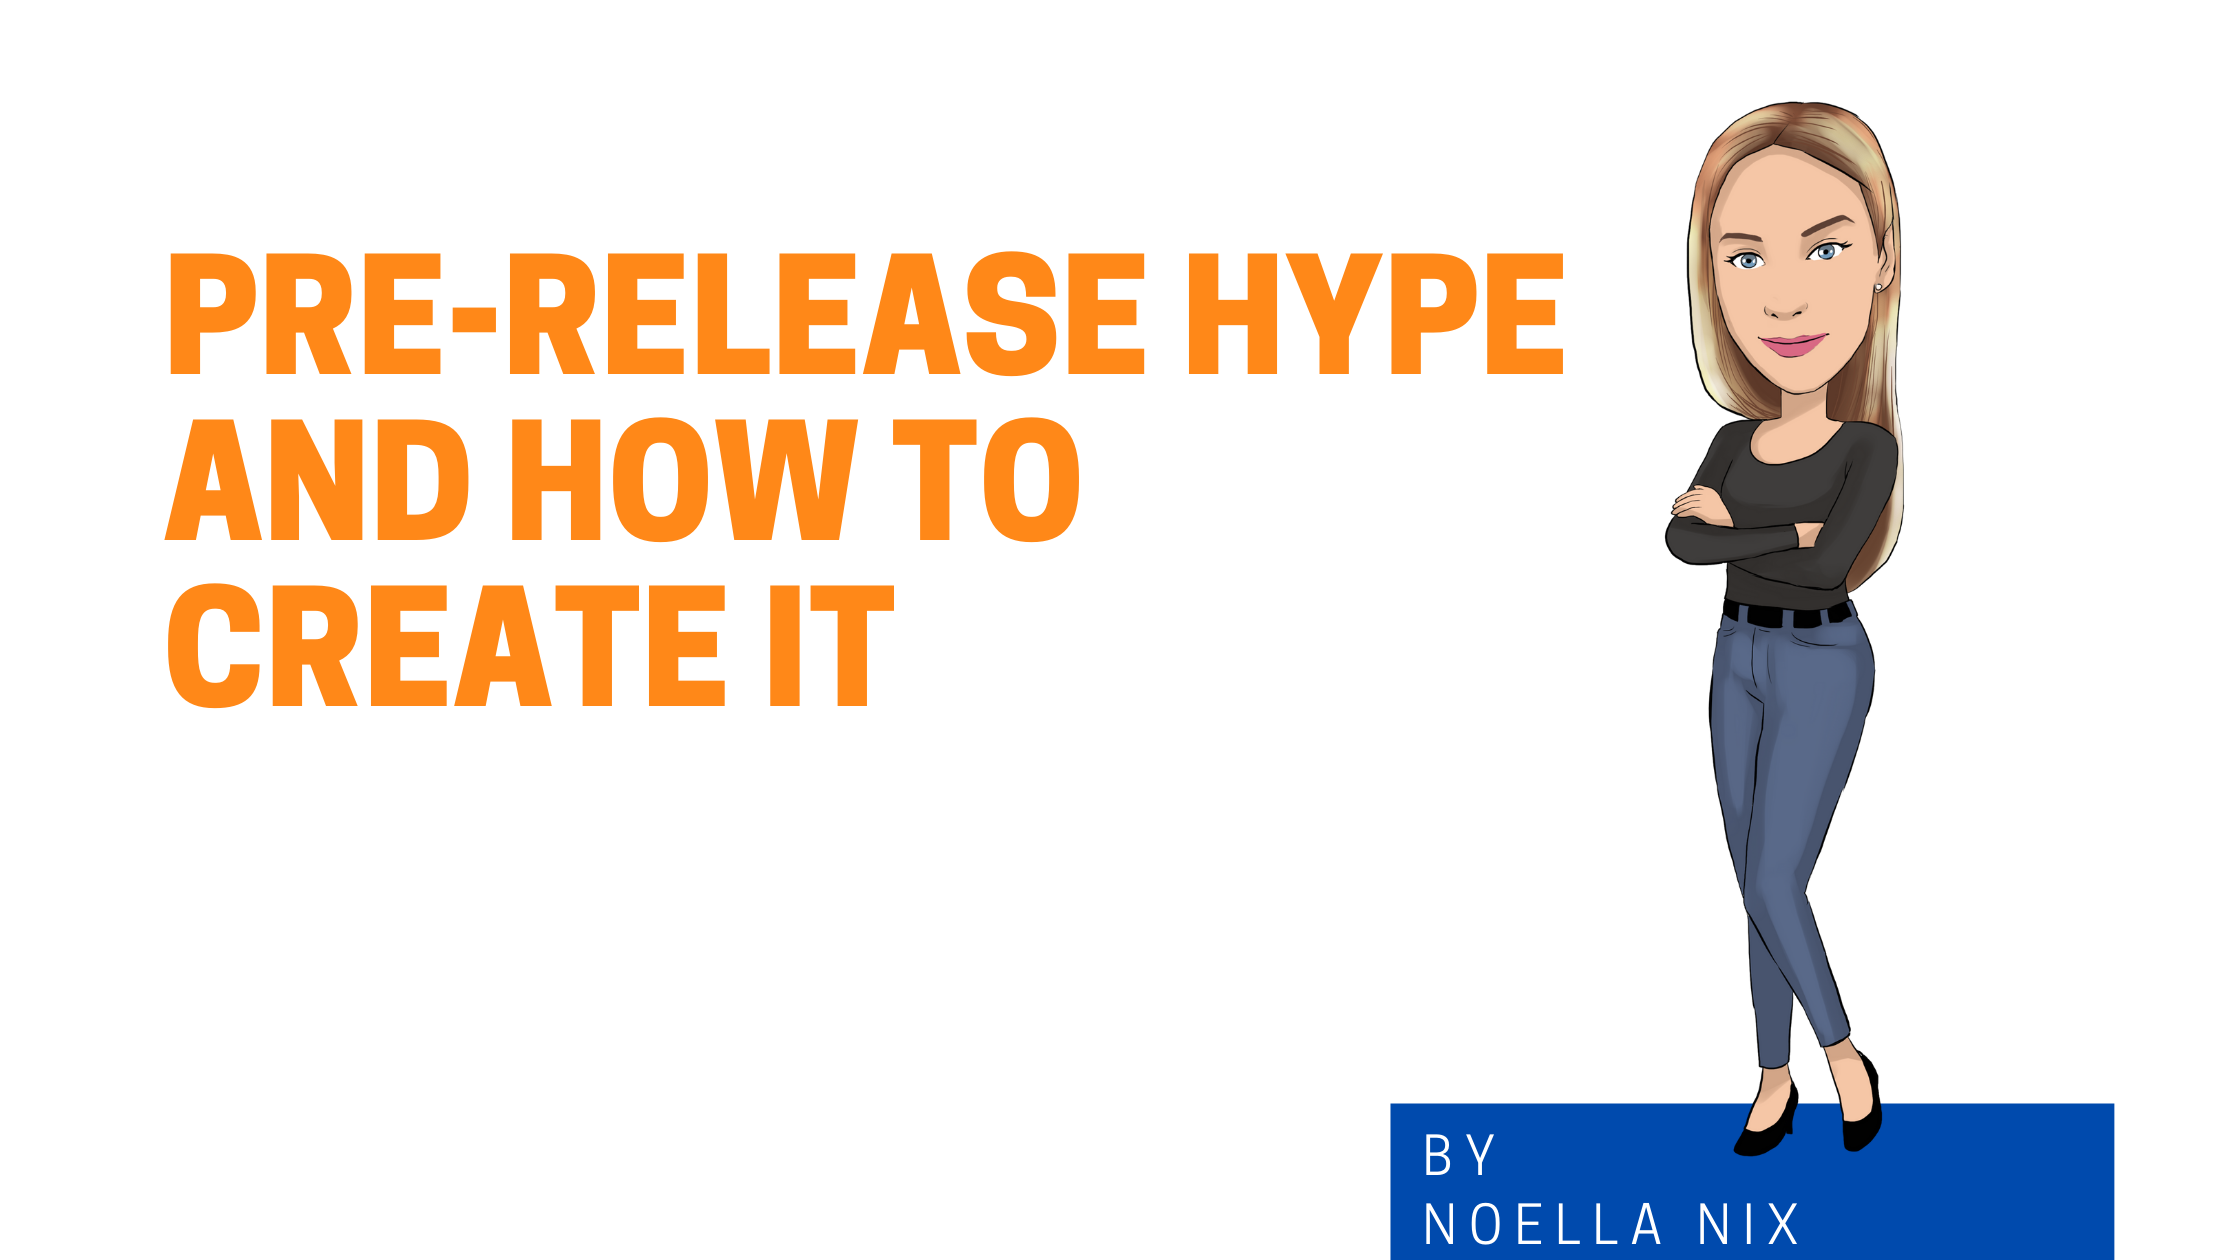 Pre-Release Hype and How To Create It Image Graphic